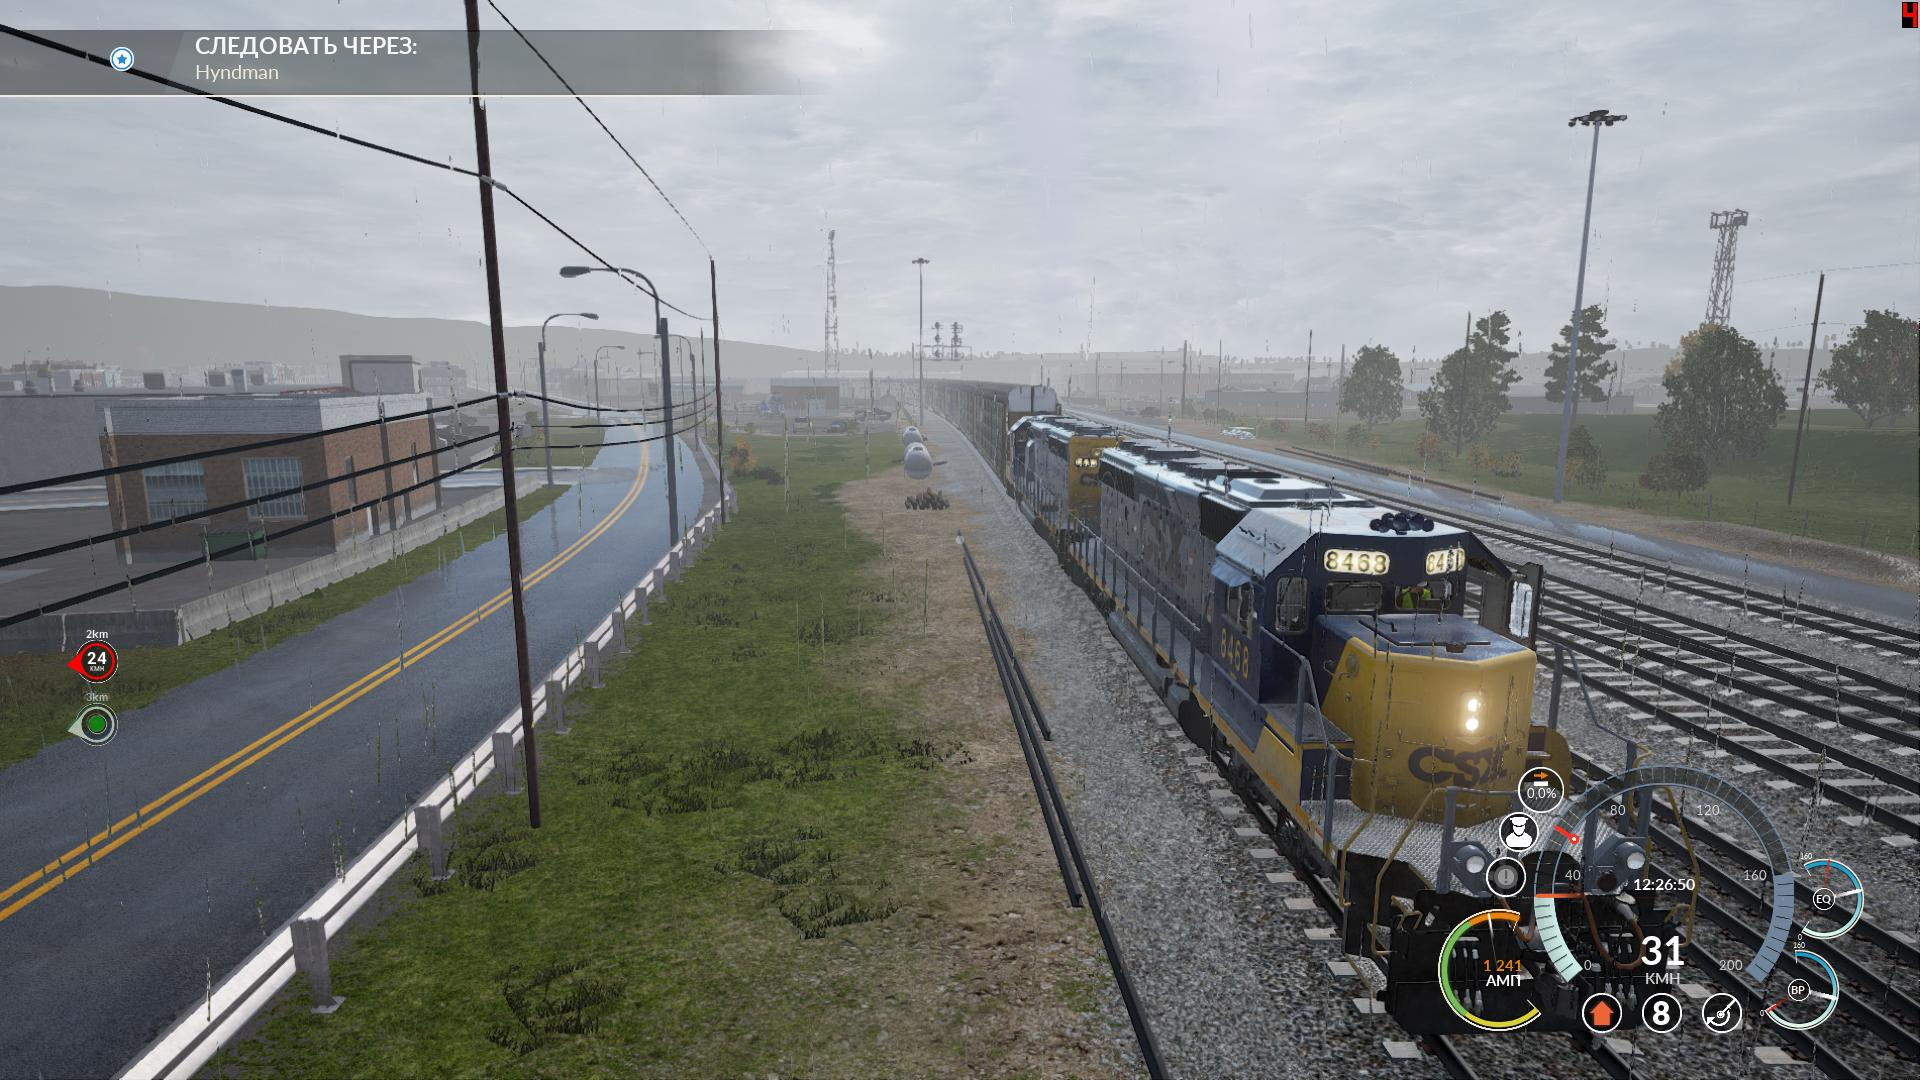 http://screenshot.ru/upload/images/2018/04/13/TS2Prototype-Win64-Shipping2018-04-1314-58-44-33f0820.jpg